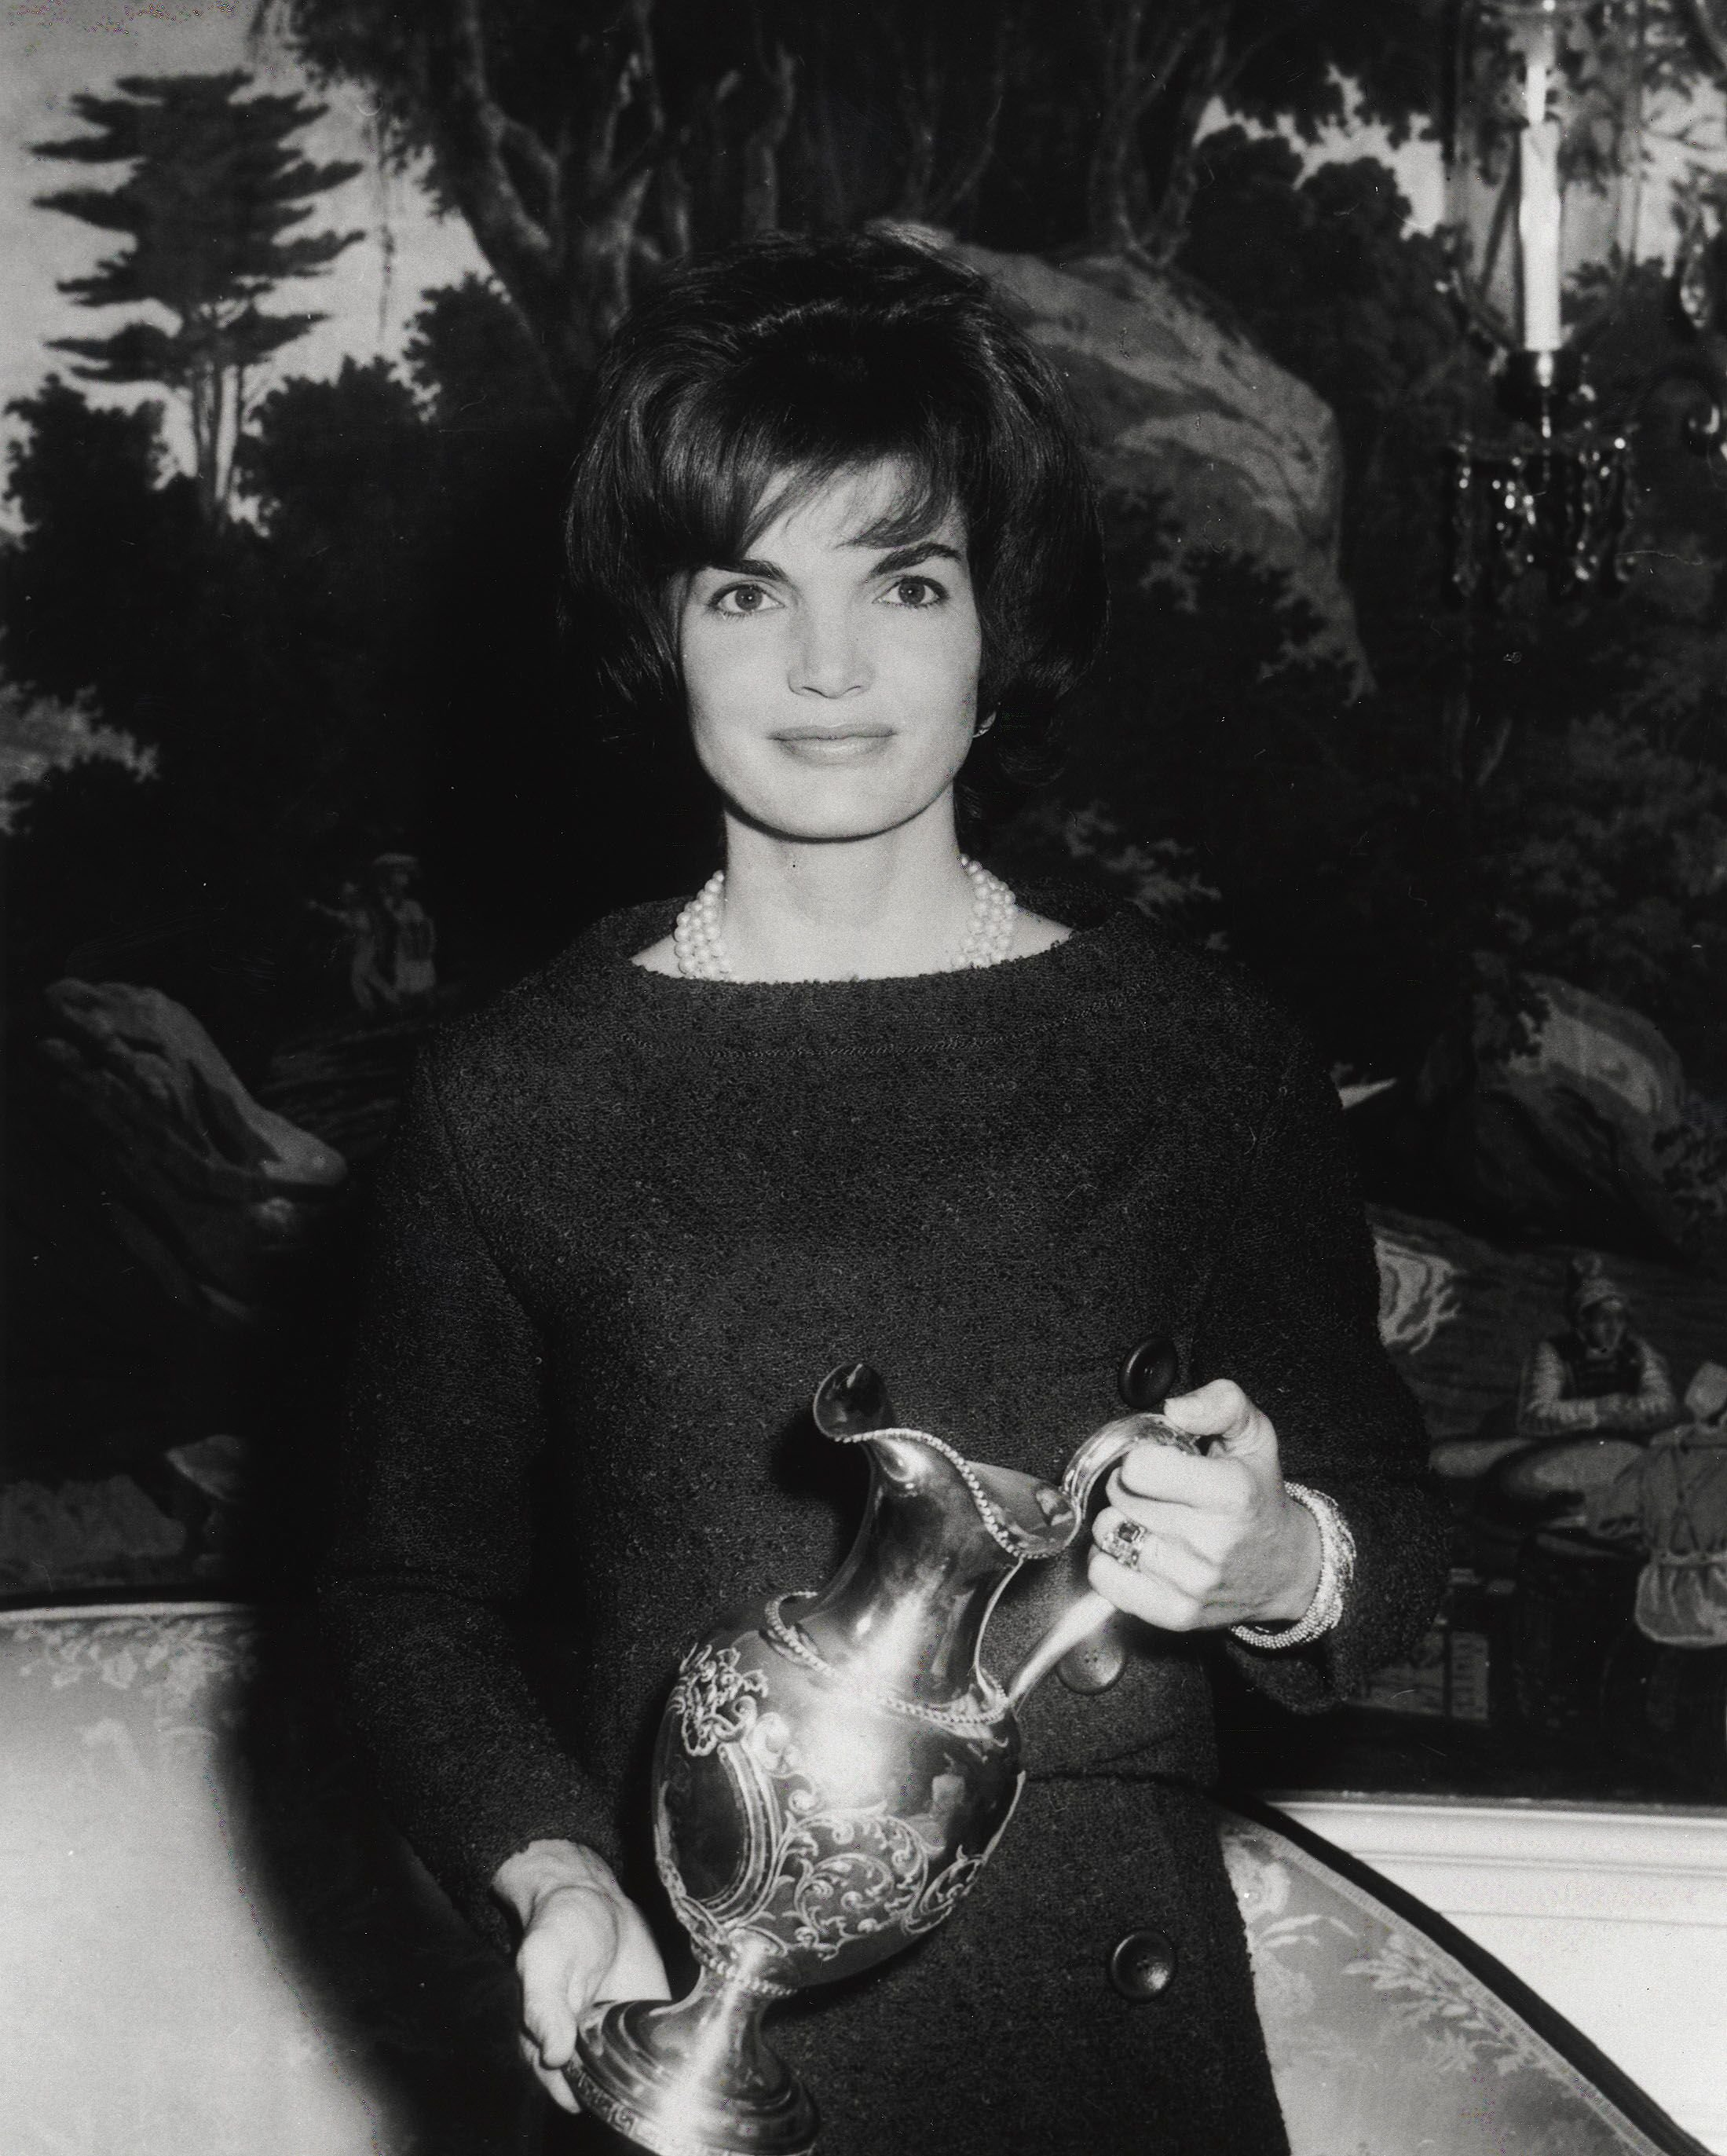 Jacqueline Kennedy poses for a photograph while holding a gift December 12, 1961 at the White House in Washington D.C. | Source: Getty Images